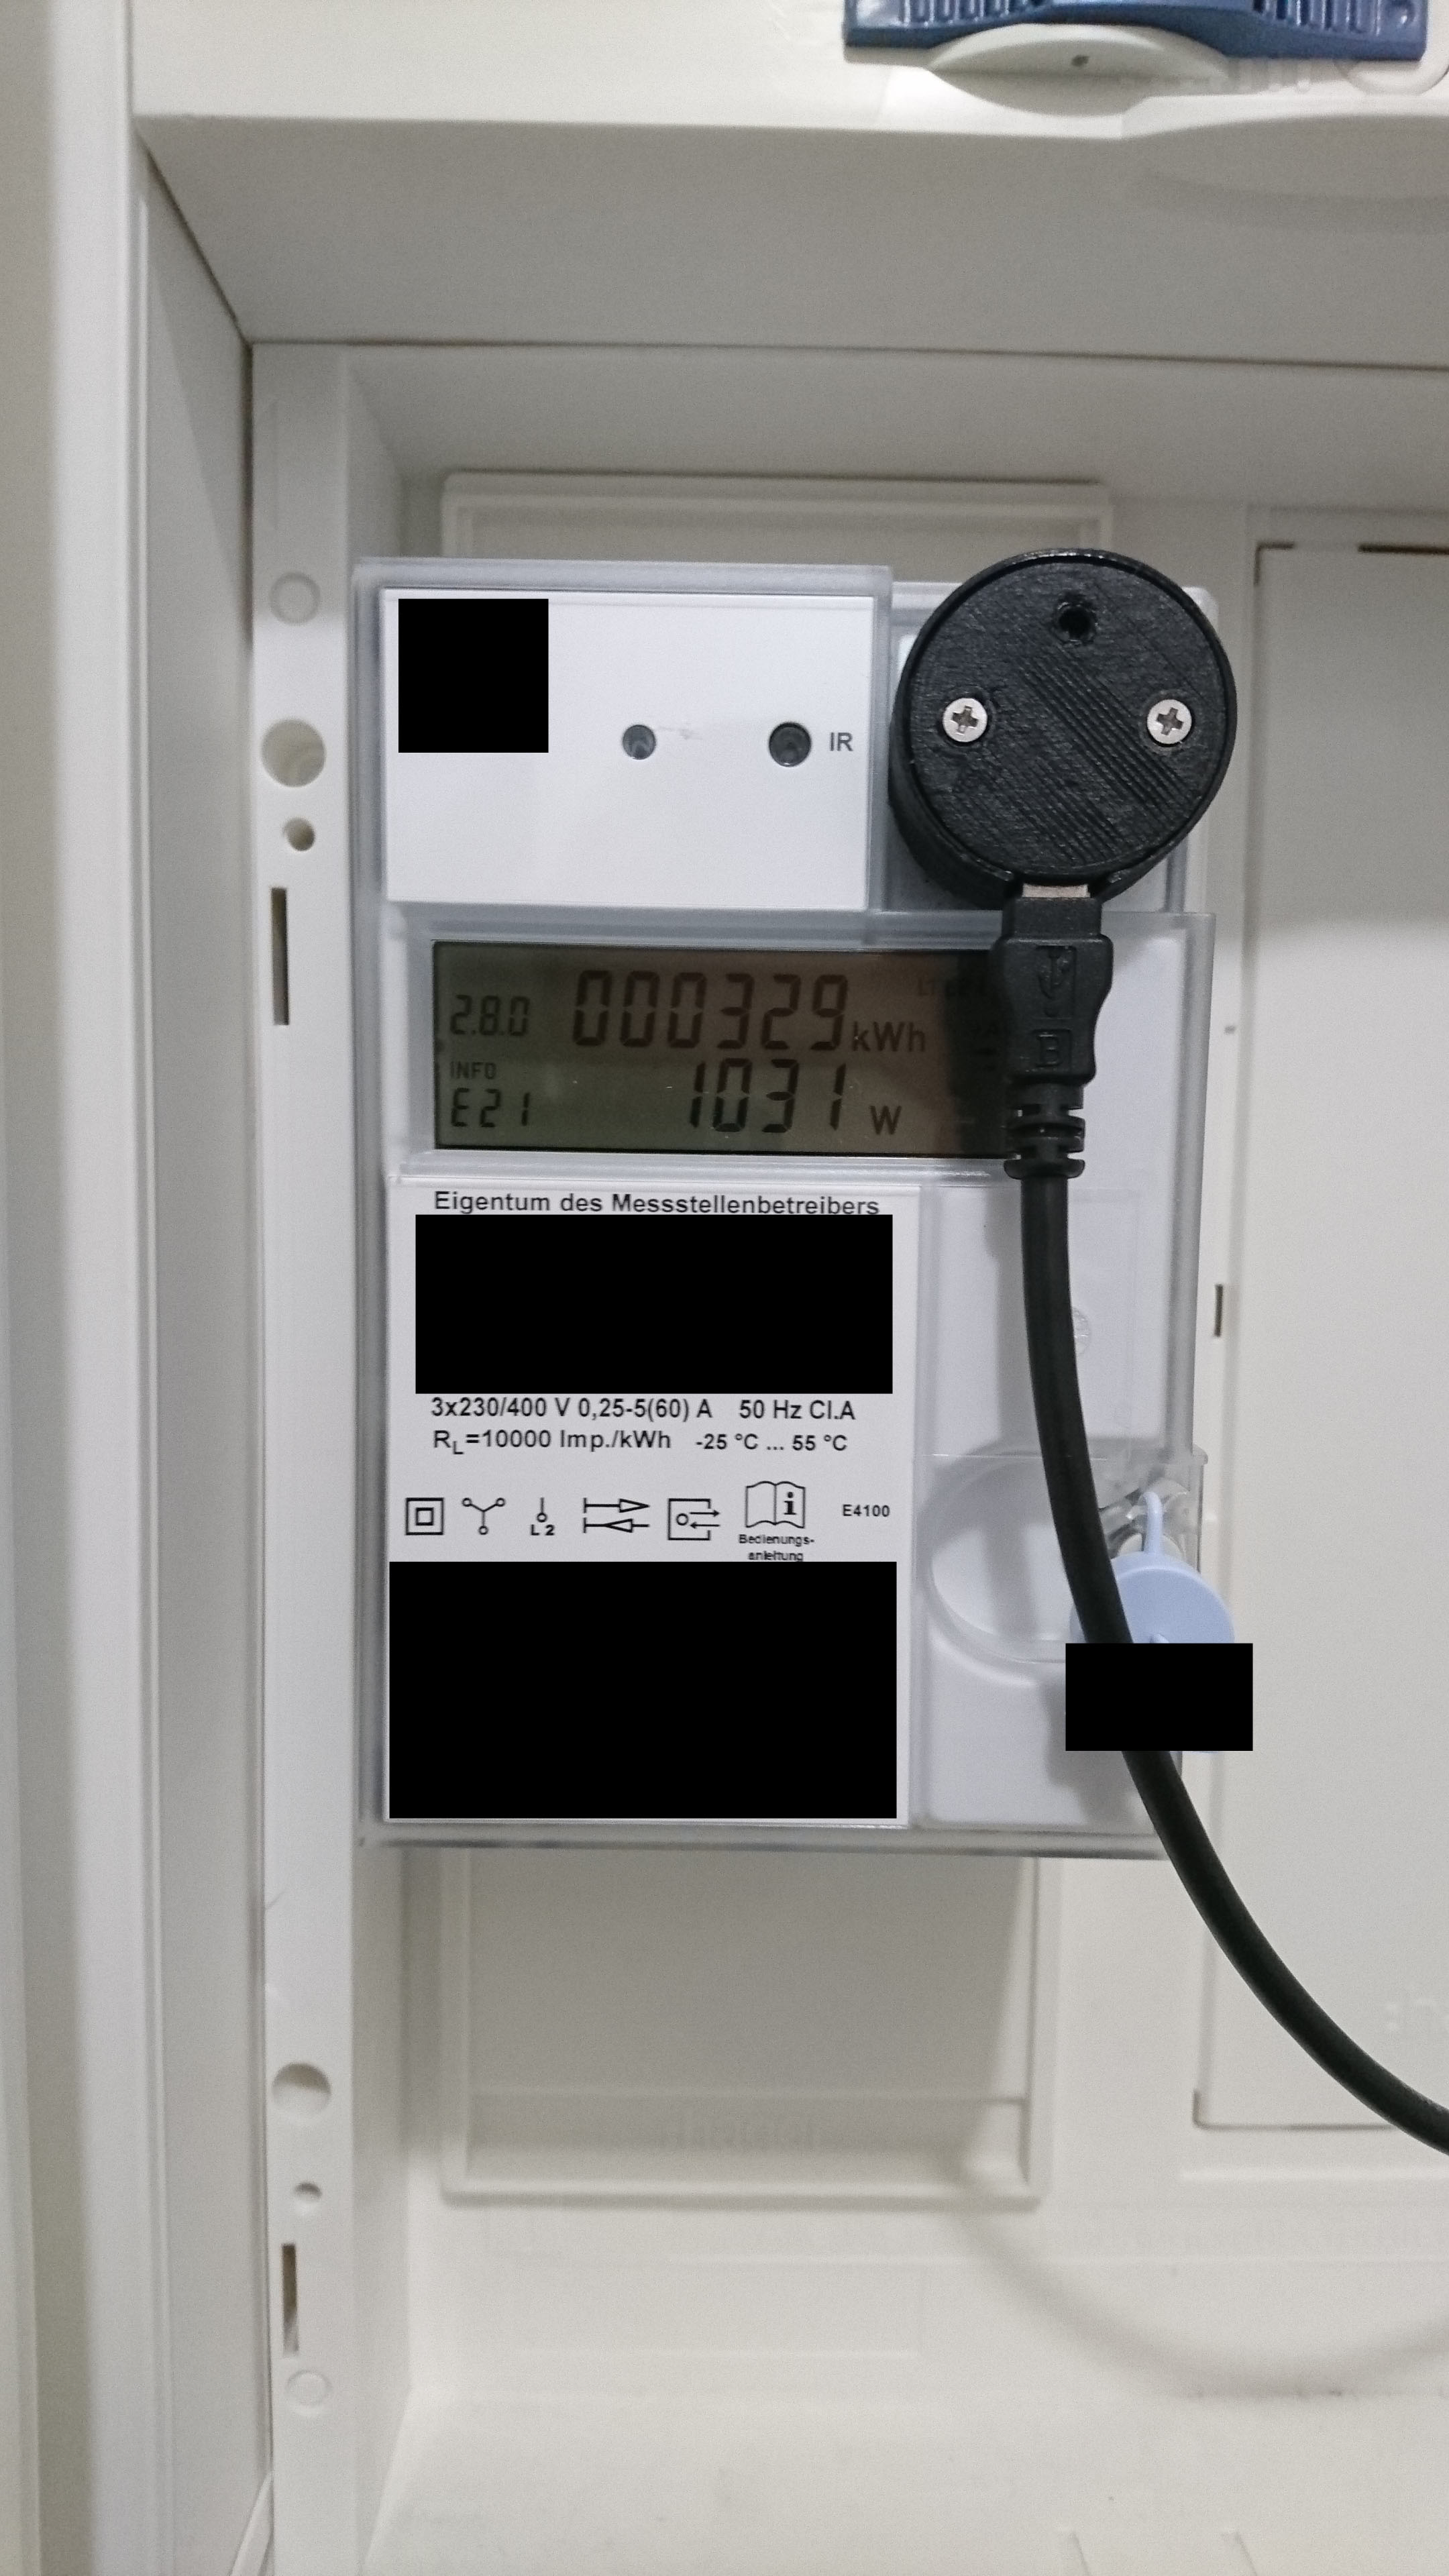 hardware:channels:meters:power:edl-ehz:emh-ehz-k.jpg